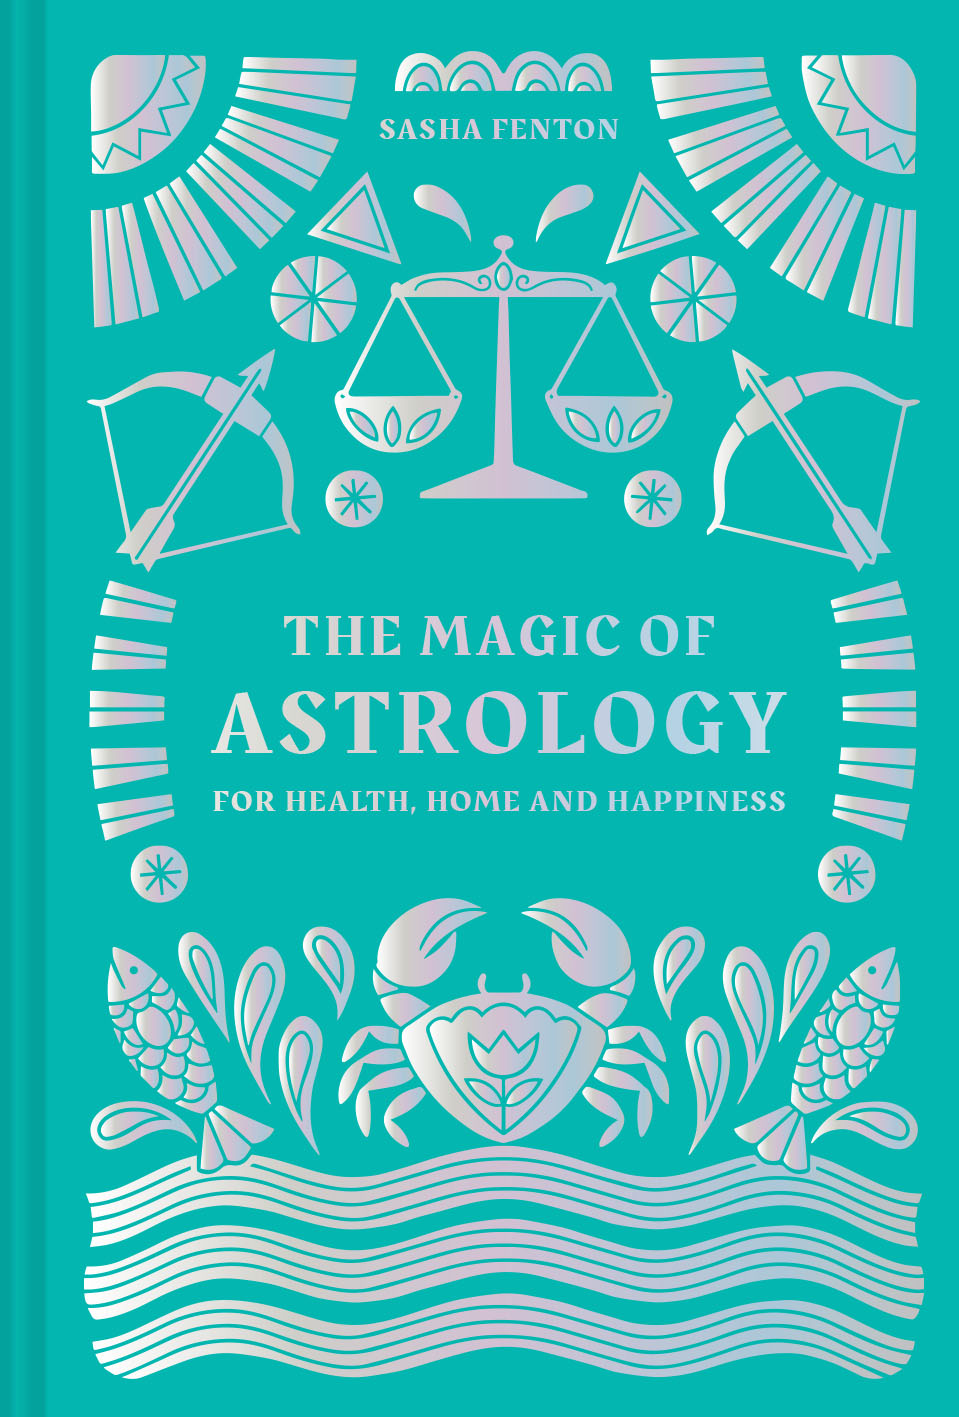 The Magic of Astrology